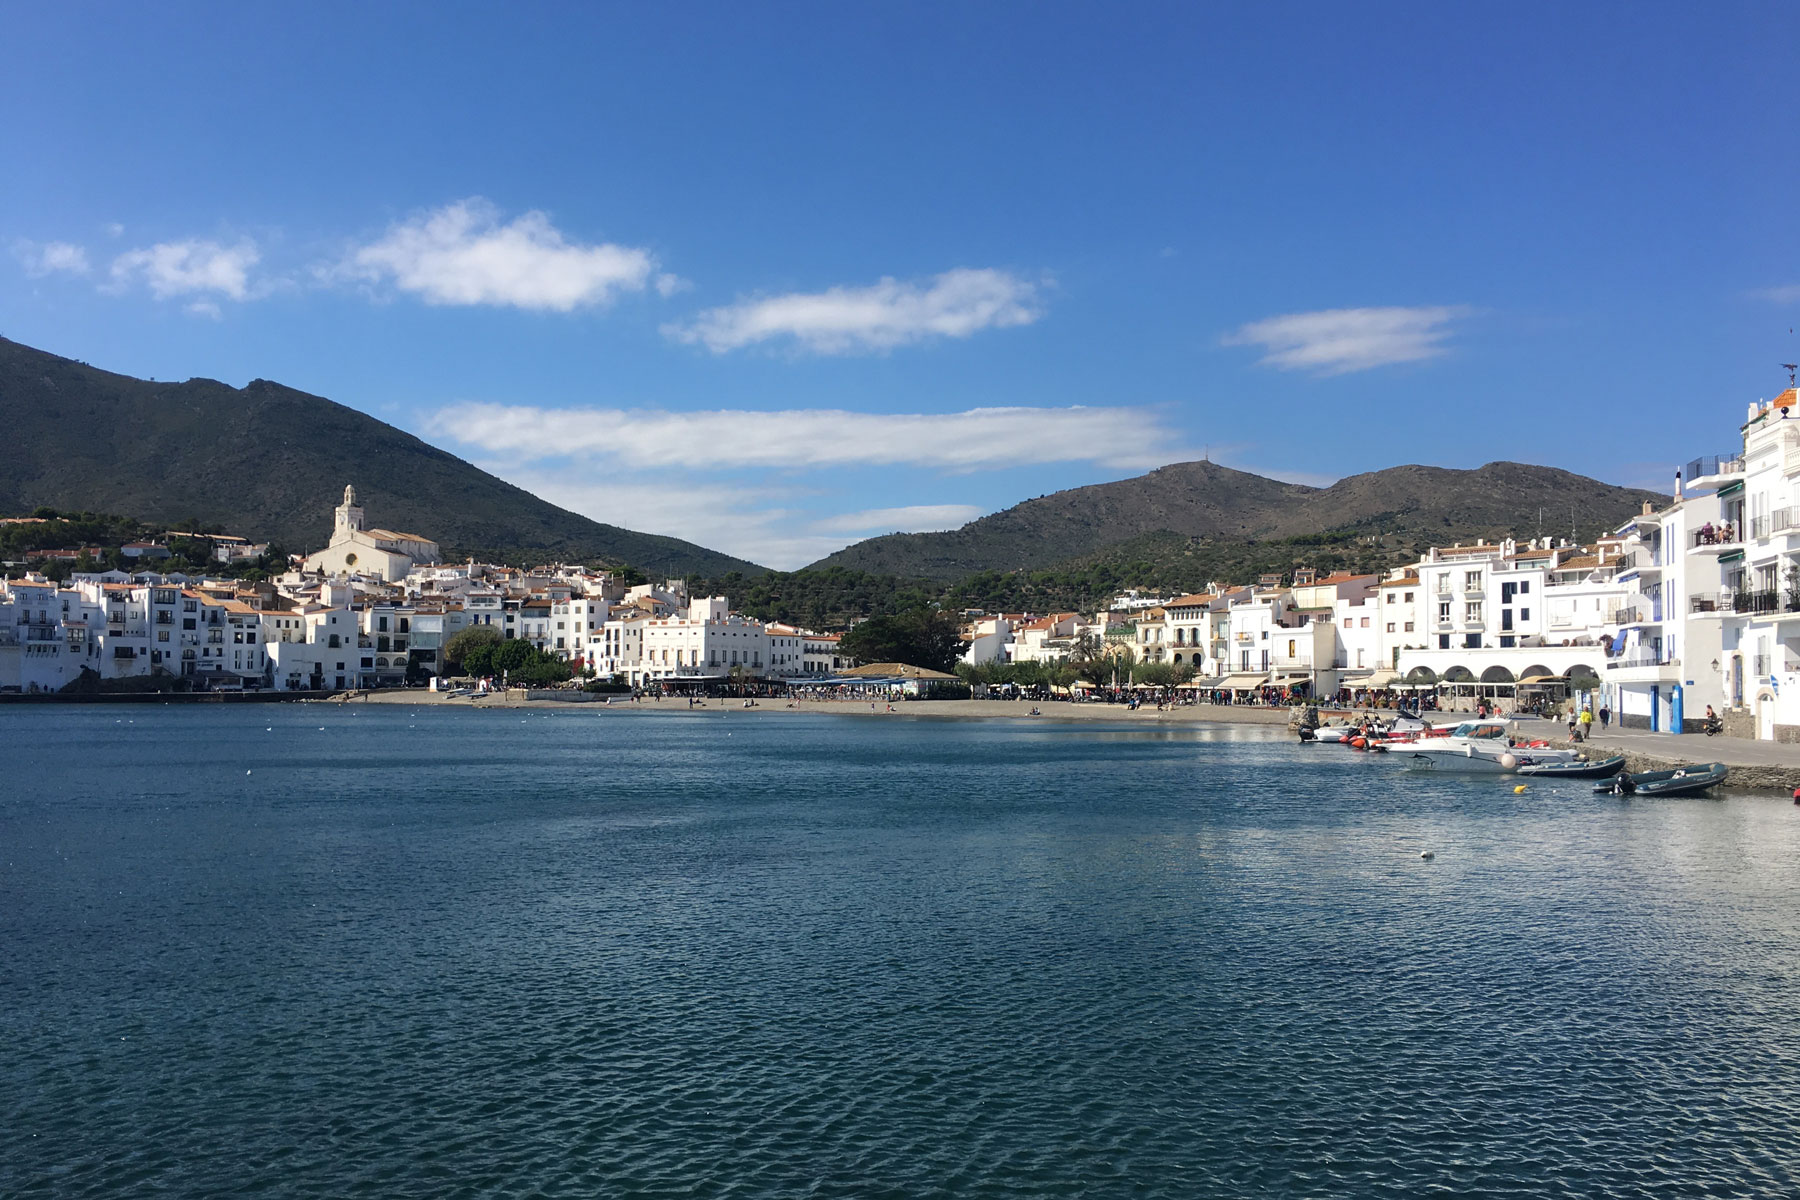 Day trip from Barcelona - Cadaques. #daytripfrombarcelona #cadaques